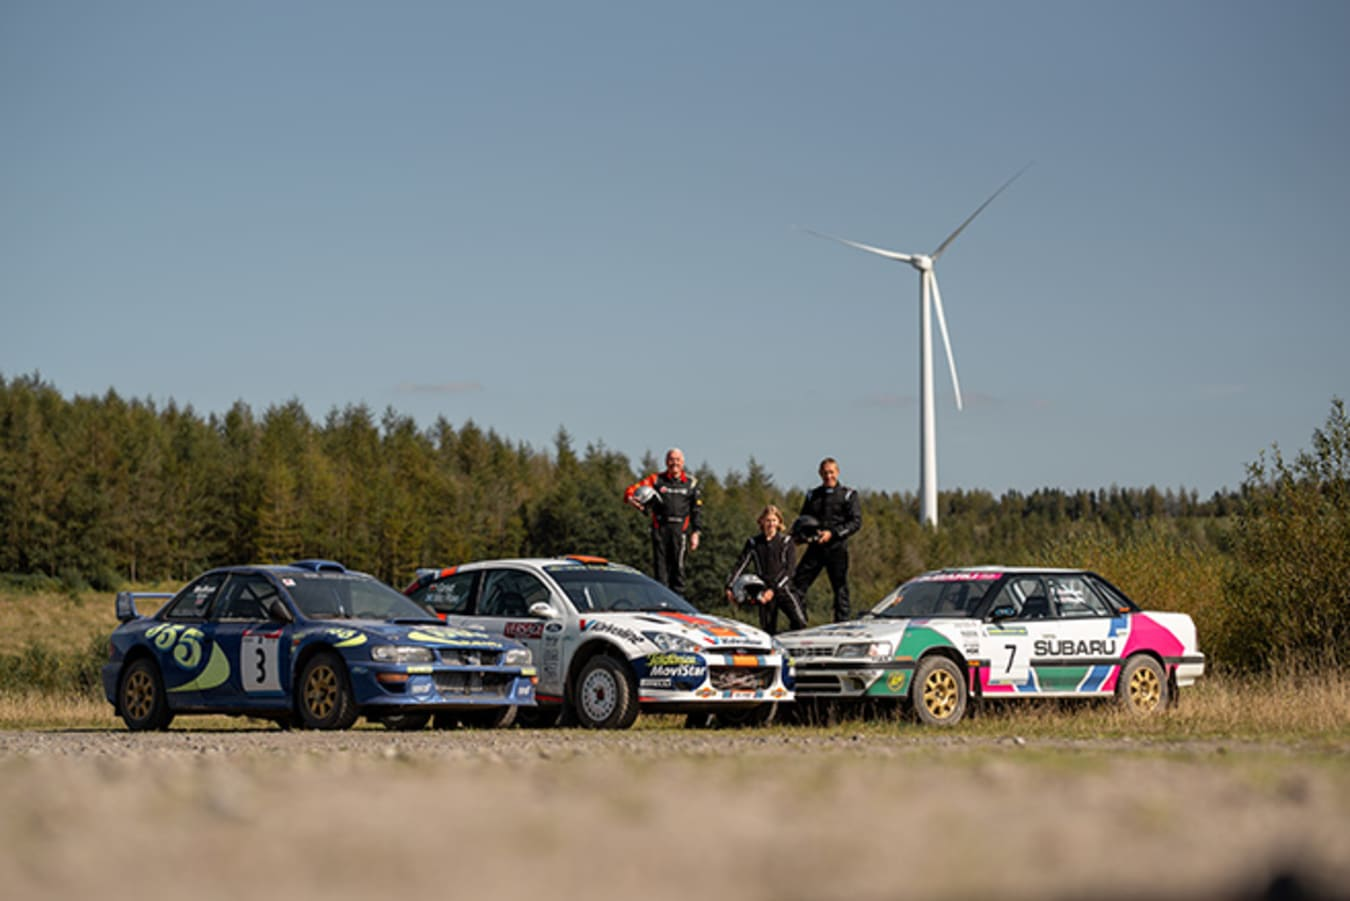 McRae family and rally cars